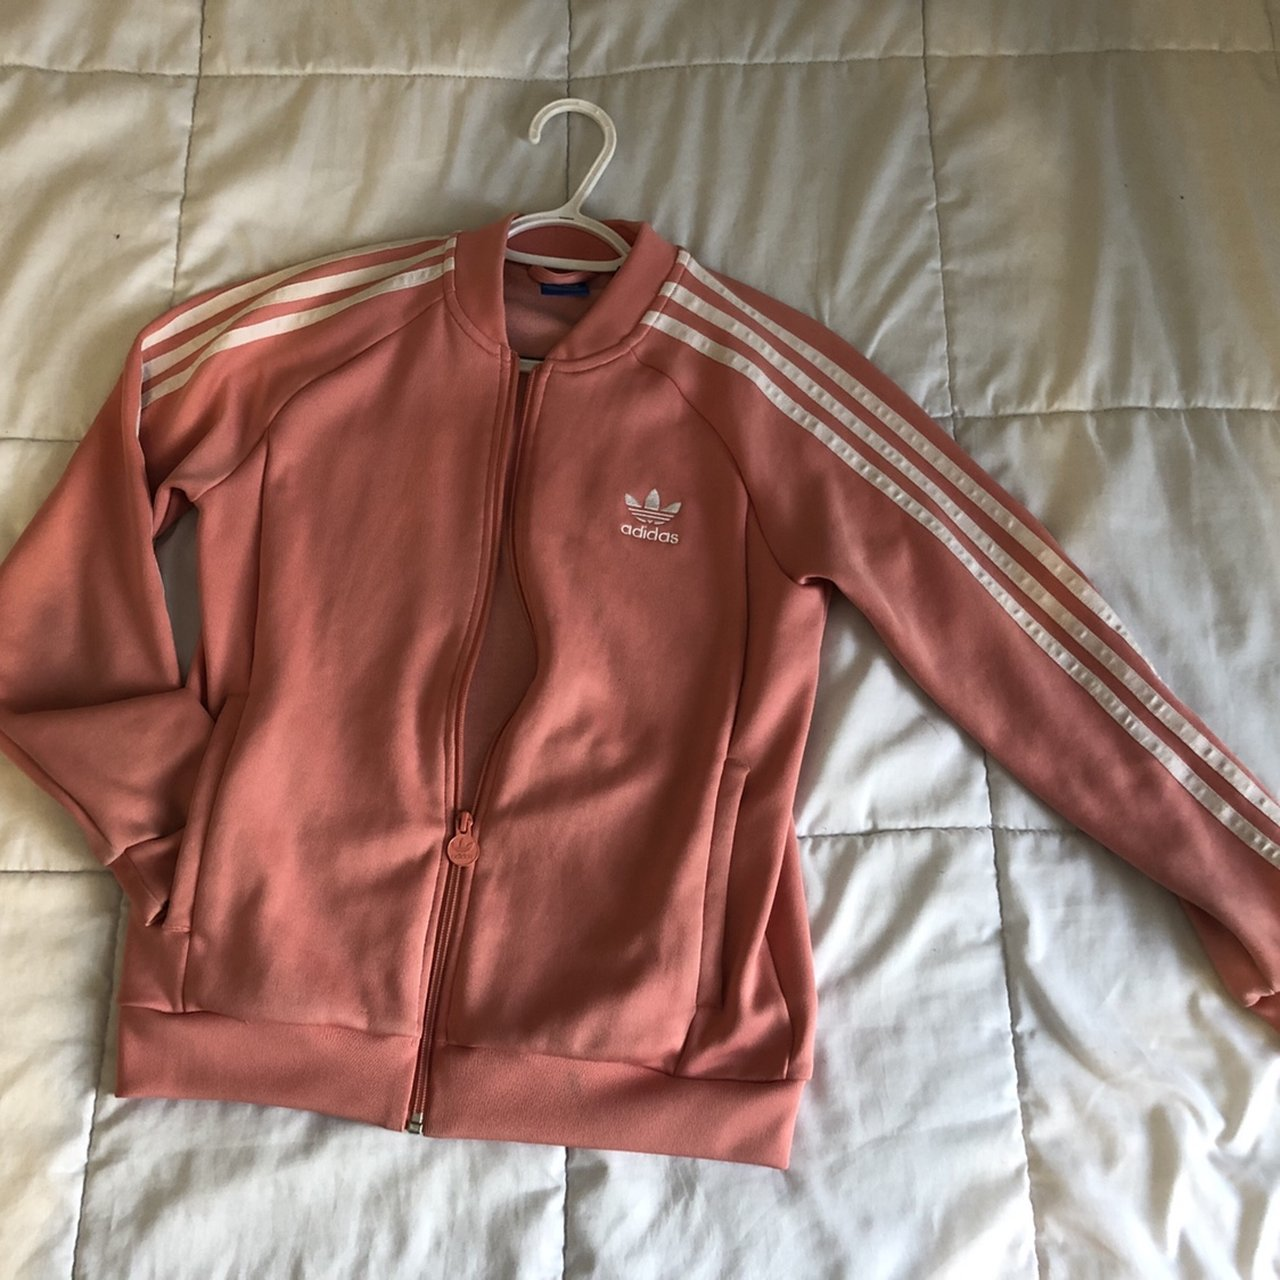 c811ed43d33a Light pink adidas track jacket with inside pockets